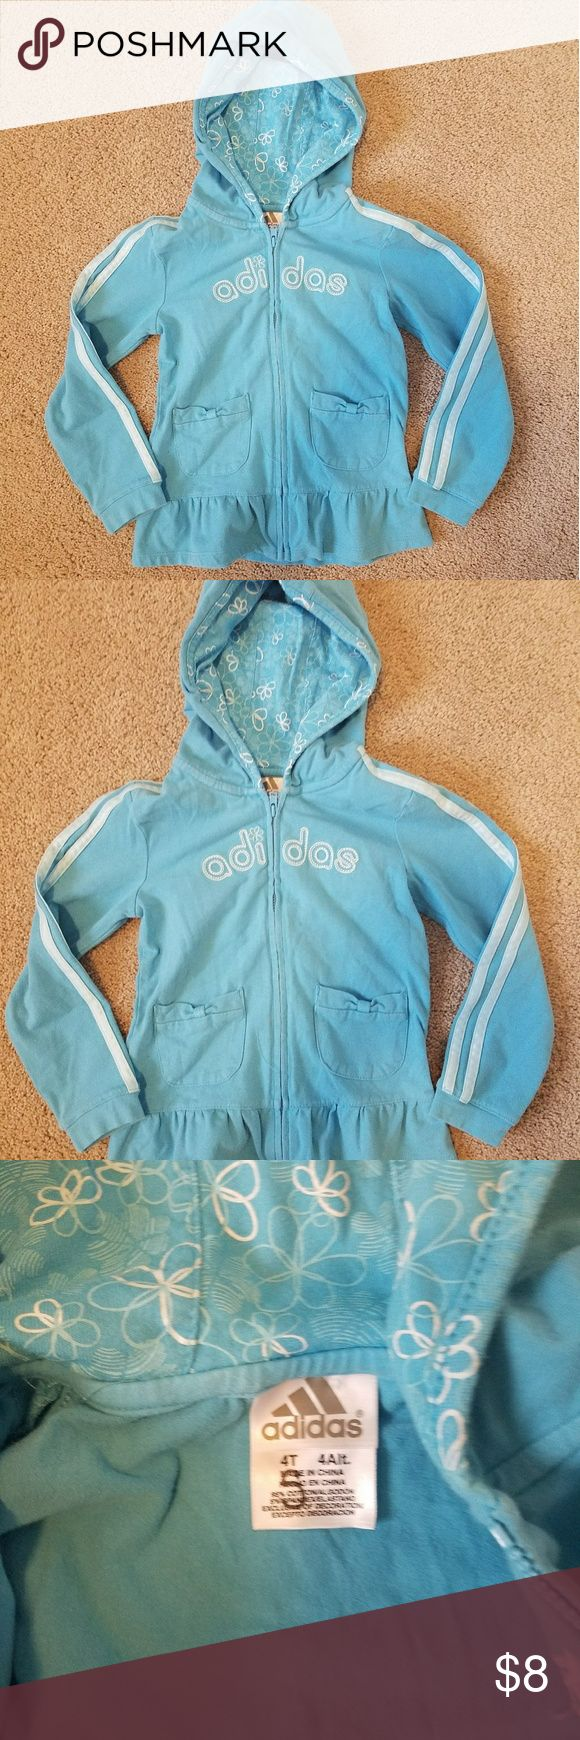 Adidas zip up hoodie Slightly worn but no stains Has marker on tag Made 95% cotton and 5% spandex adidas Shirts & Tops Sweatshirts & Hoodies